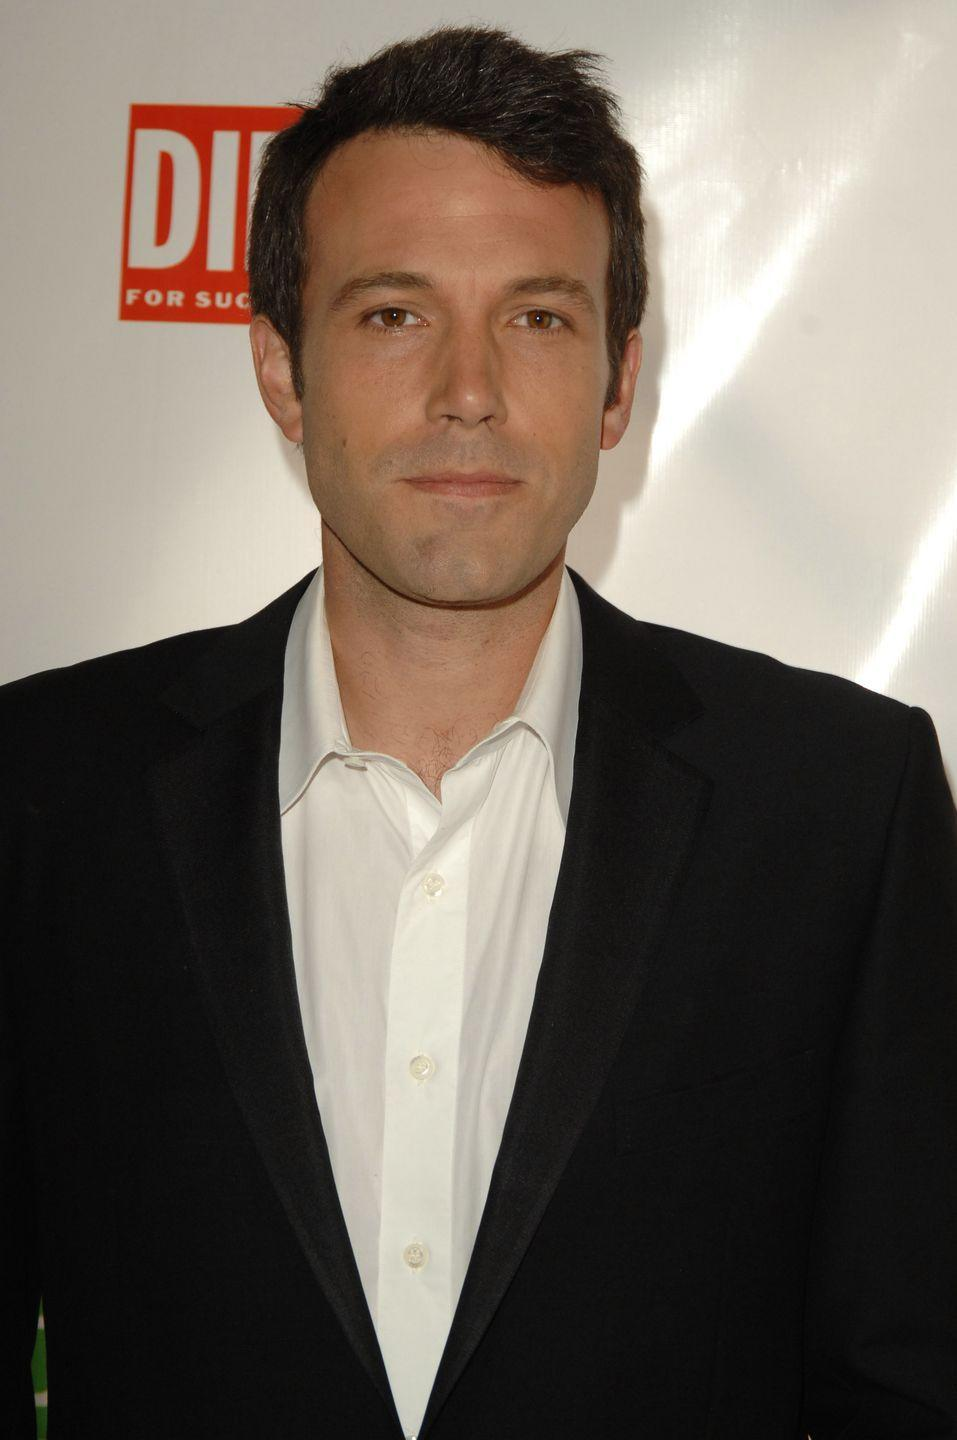 <p>Affleck used to go without scruff when he first started out in the industry. Now? Not so much.</p>